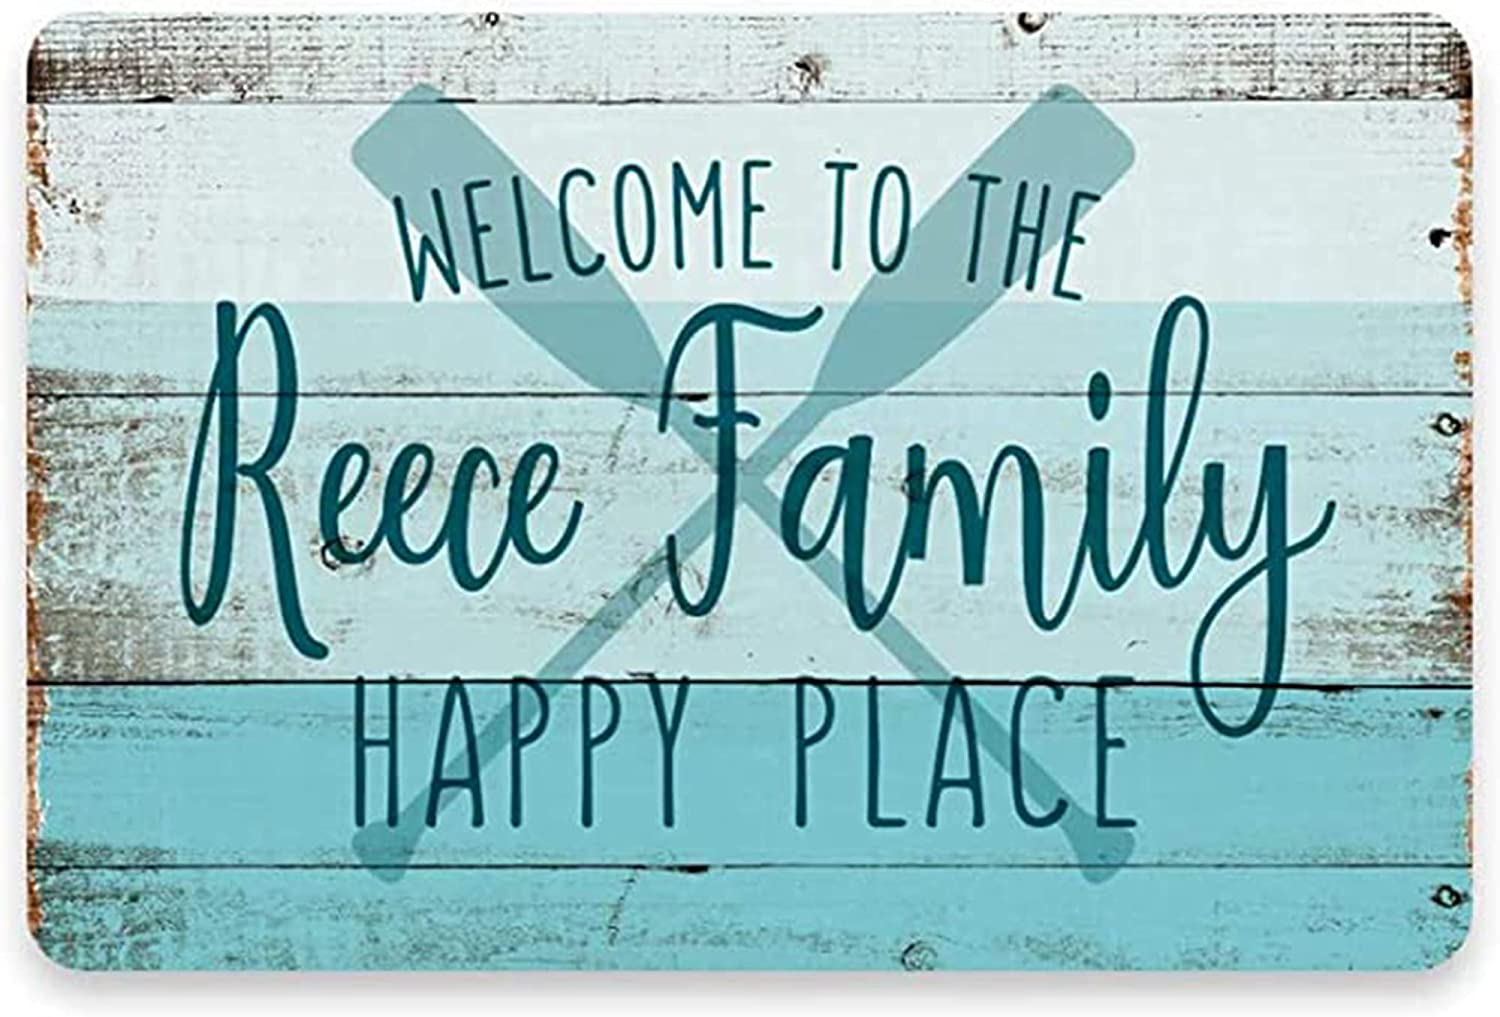 Auwozc Personalized Beach House Sign - Welcome to The Happy Place Durable Customized Family Name Wall Decor Metal meatl Sign -Use Indoor/Outdoor - Decor for Resort and Beach House